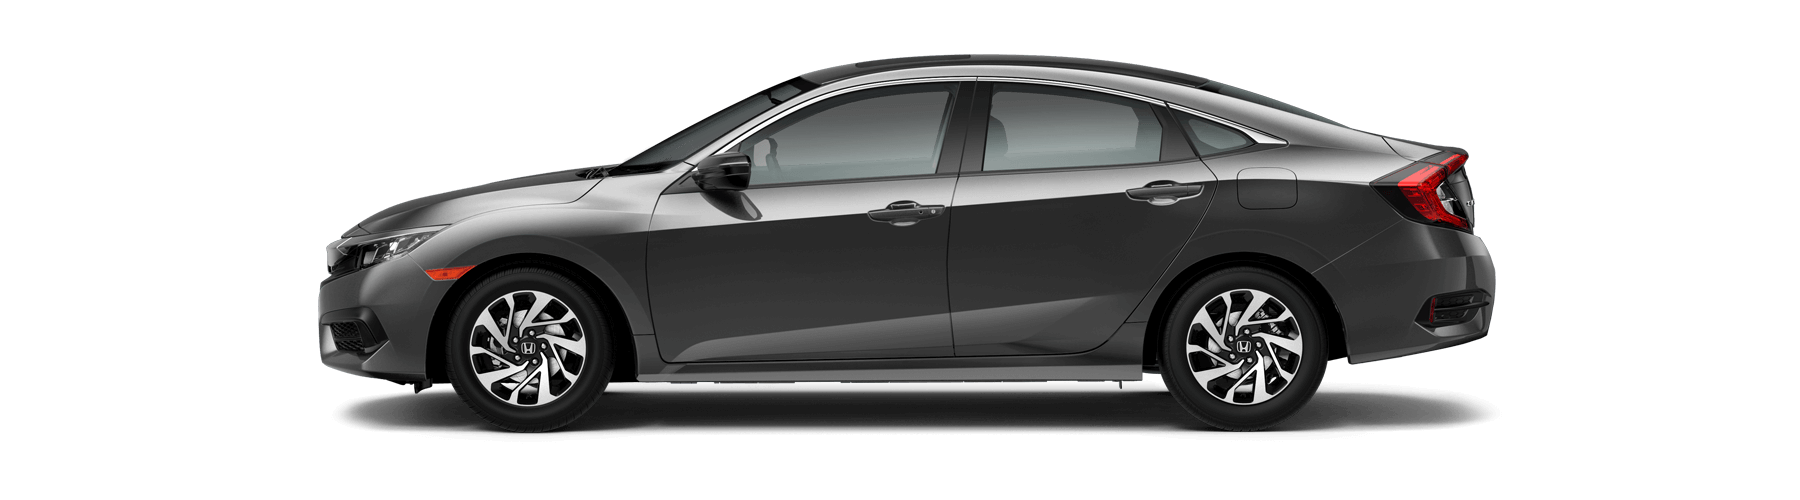 2018 honda civic sedan.  honda 2018 honda civic sedan side profile throughout honda civic sedan